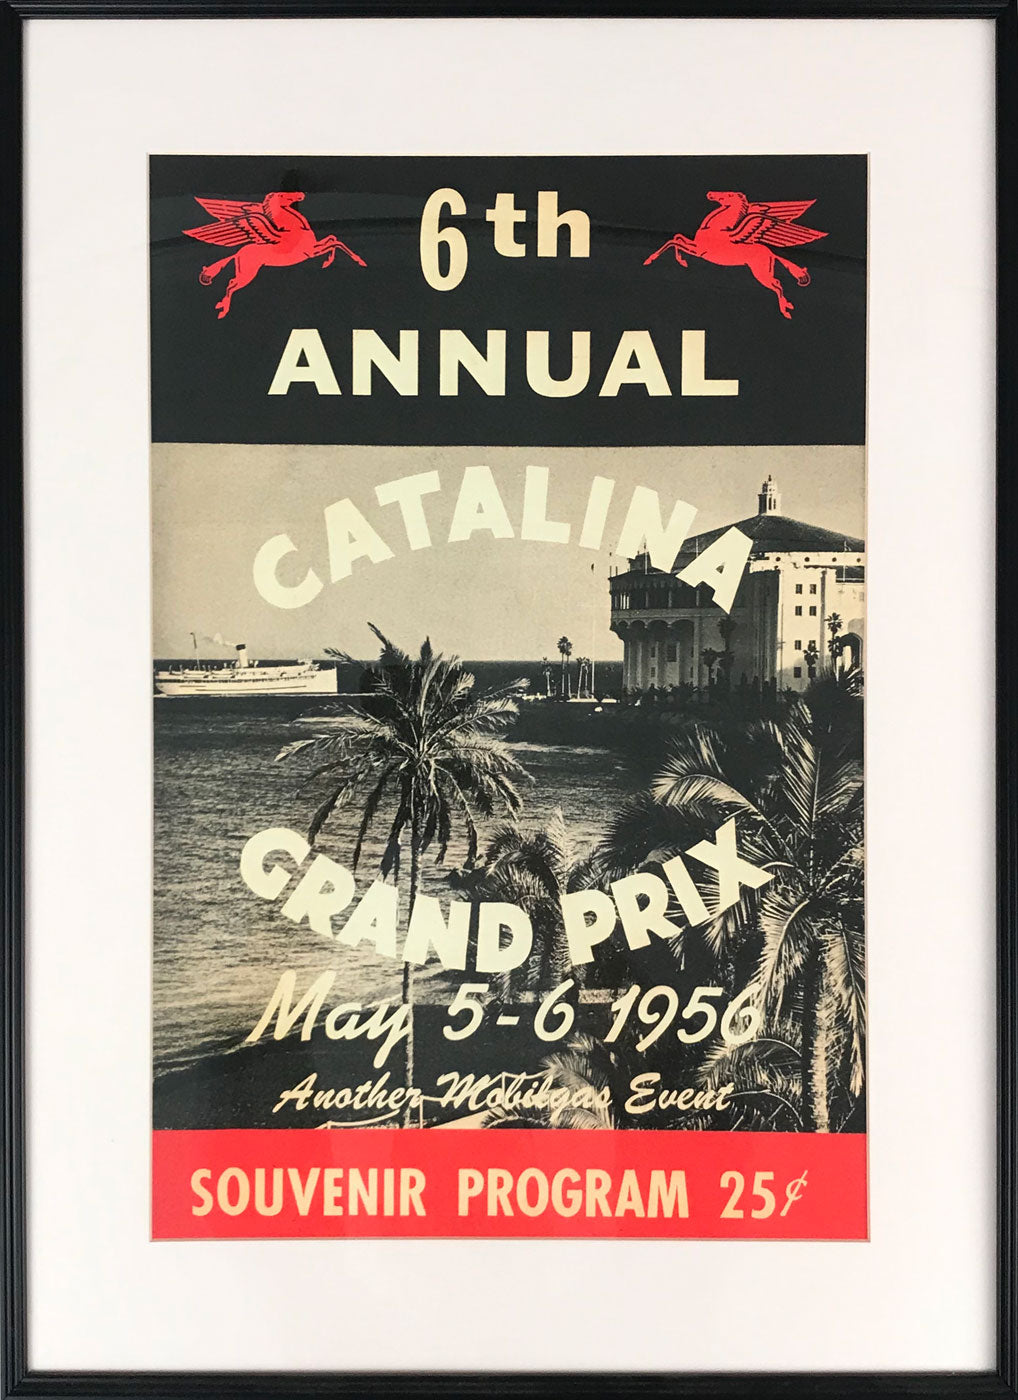 6th annual Catalina Grand Prix poster 1956